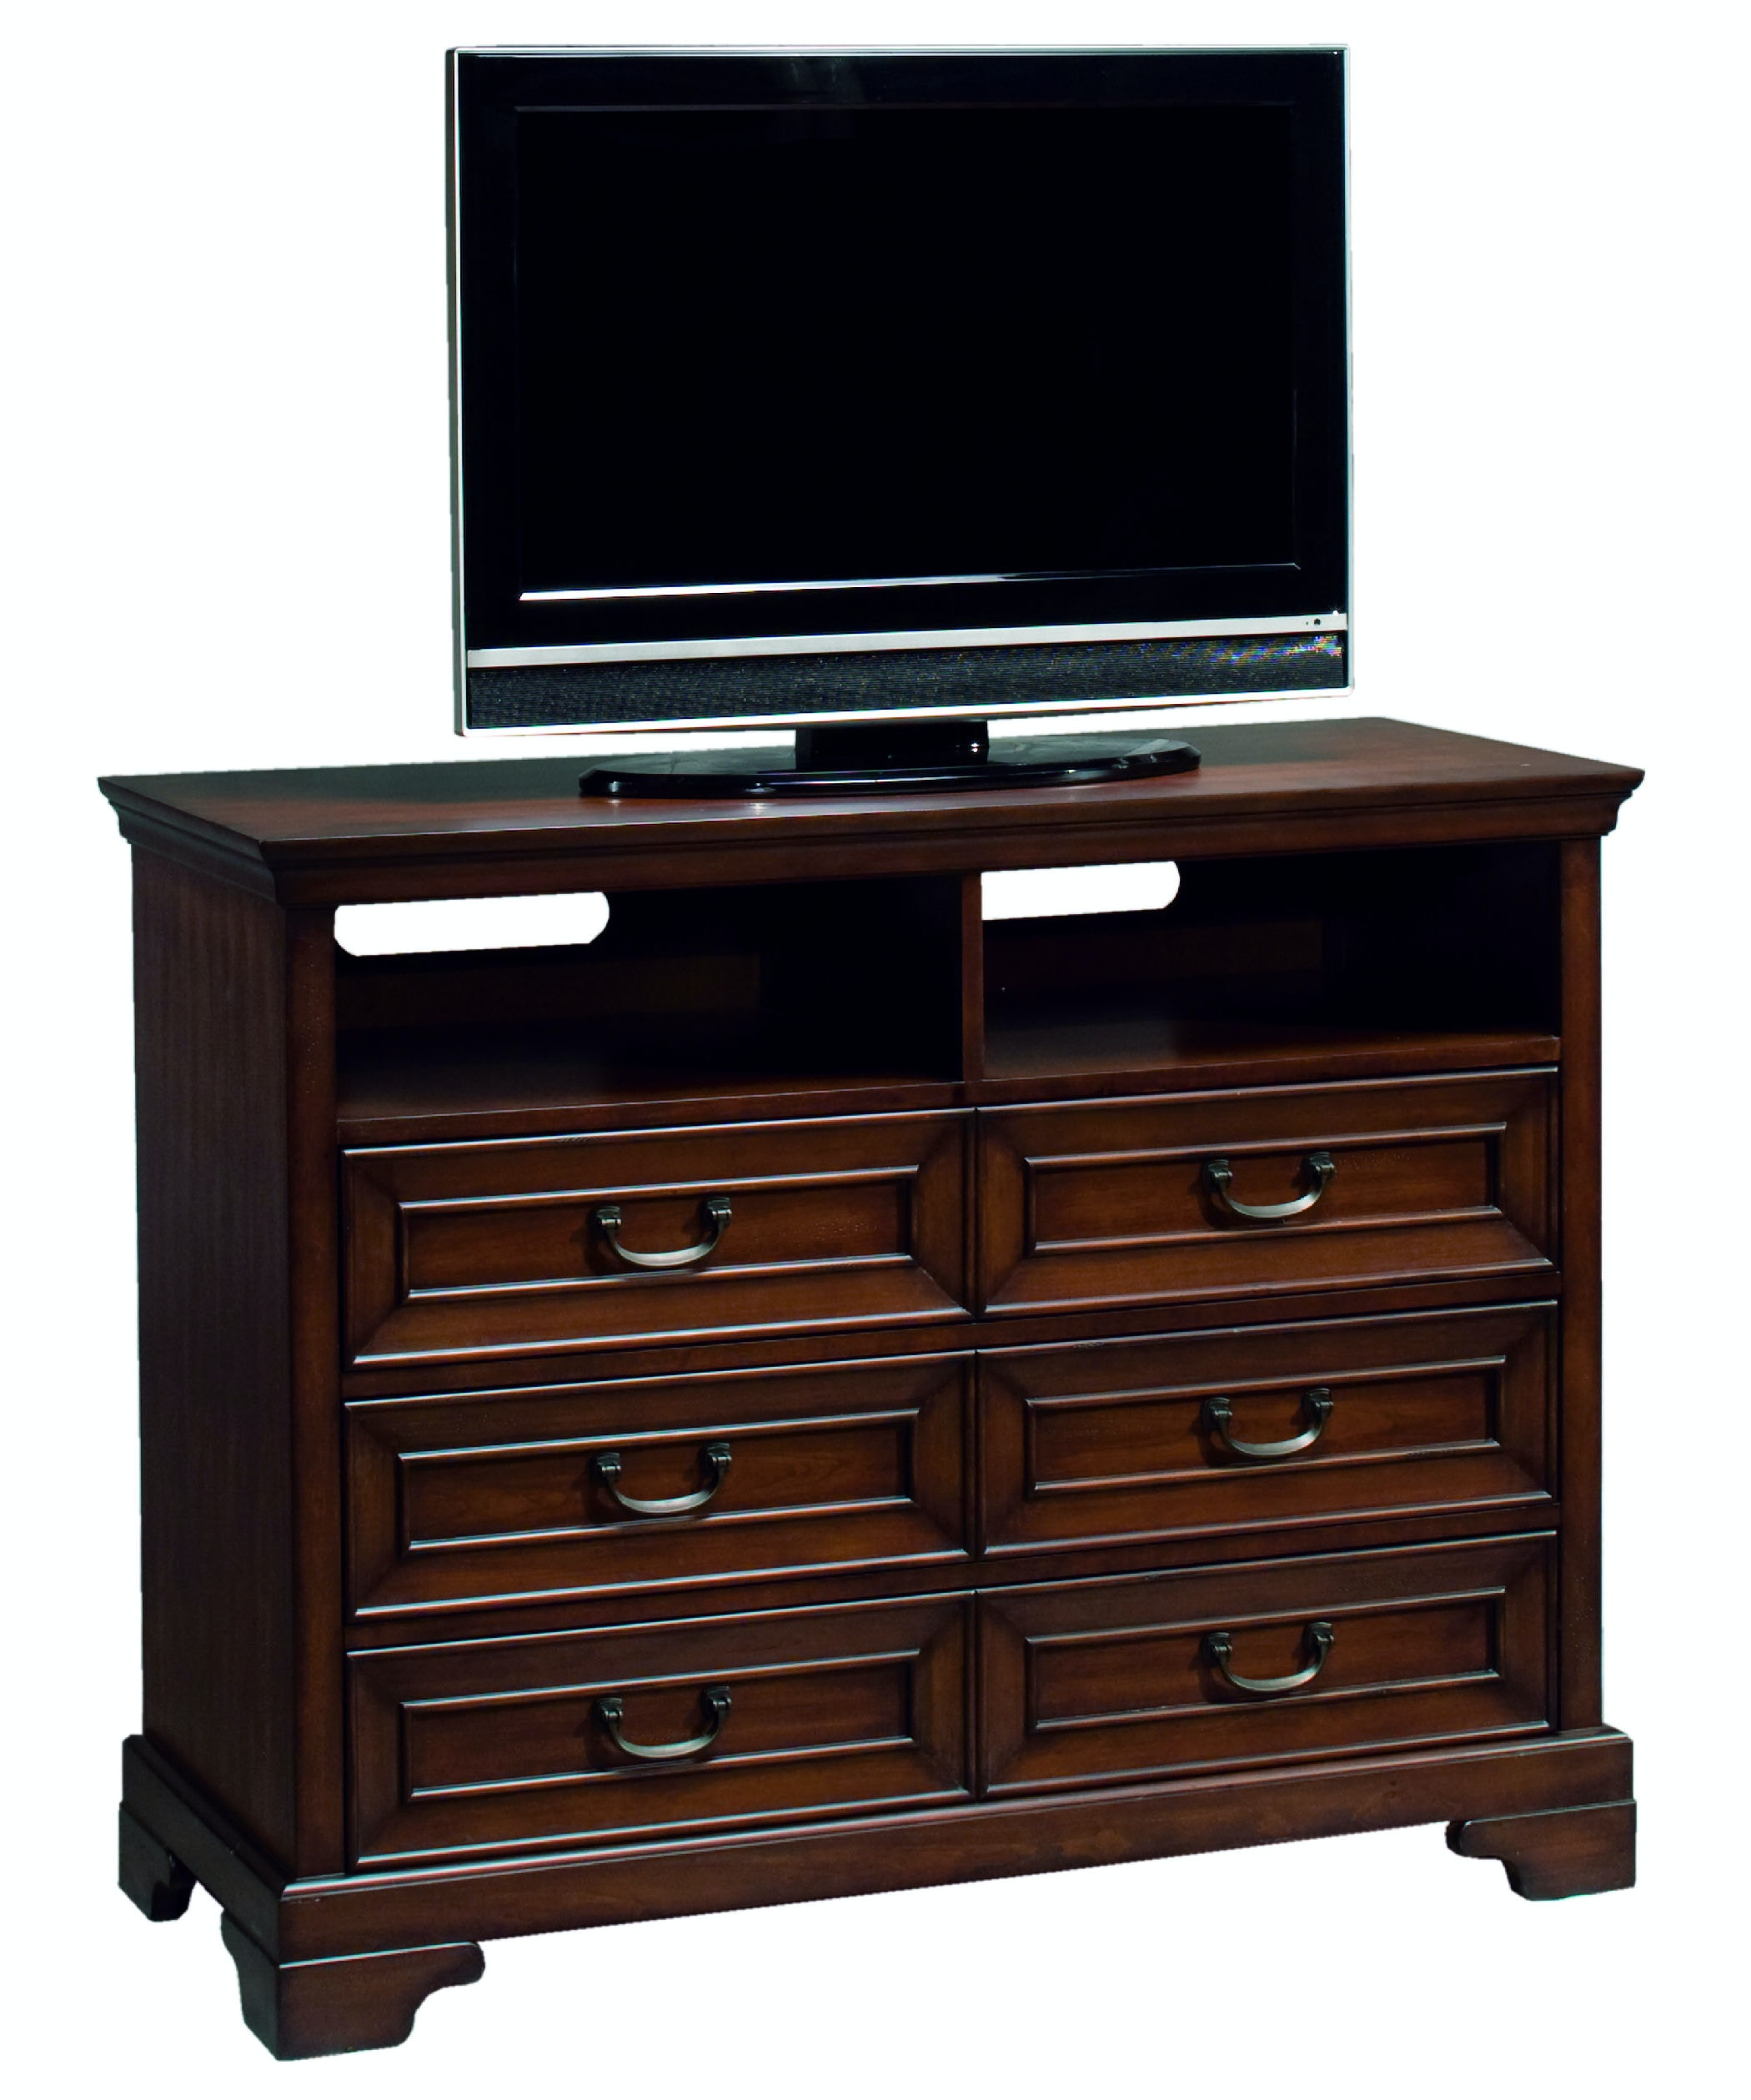 Homeworks Richmond Entertainment Chest HWI40485 From Walter E. Smithe  Furniture + Design